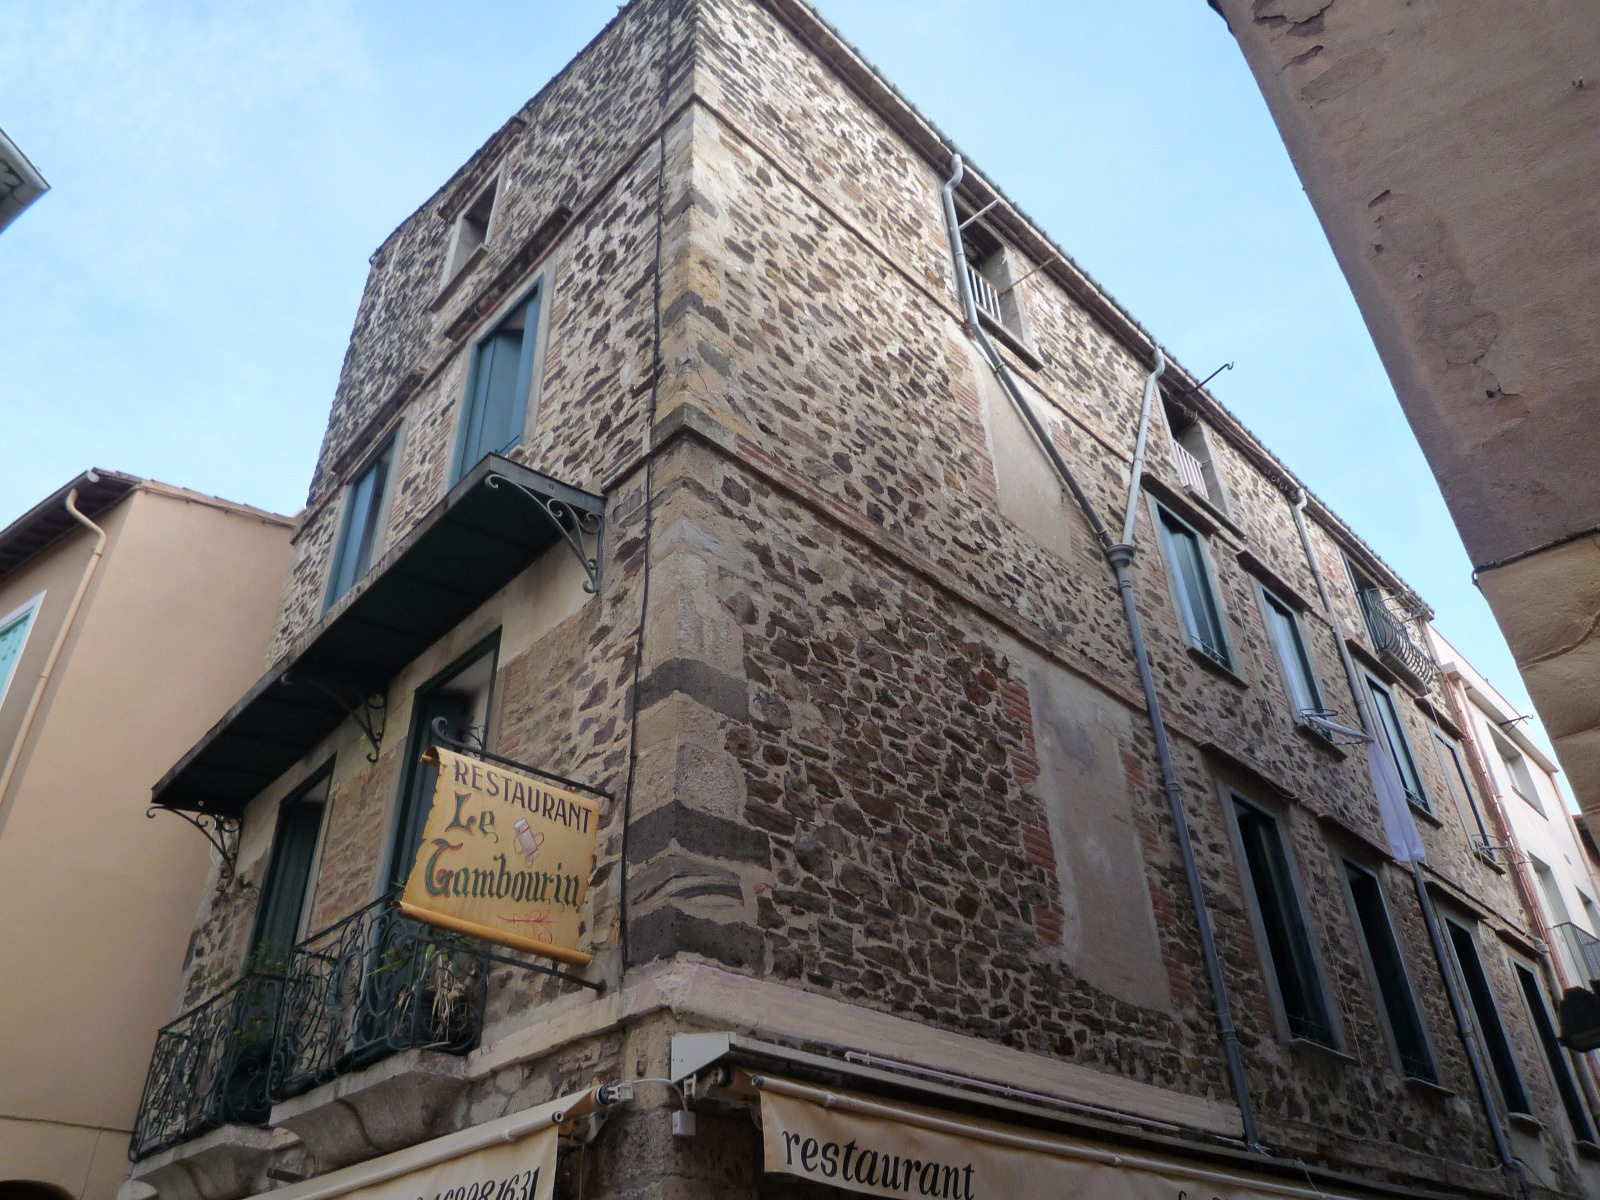 Vente collioure appartement 70 m2 4 pi ces centre ville for Acheter maison collioure